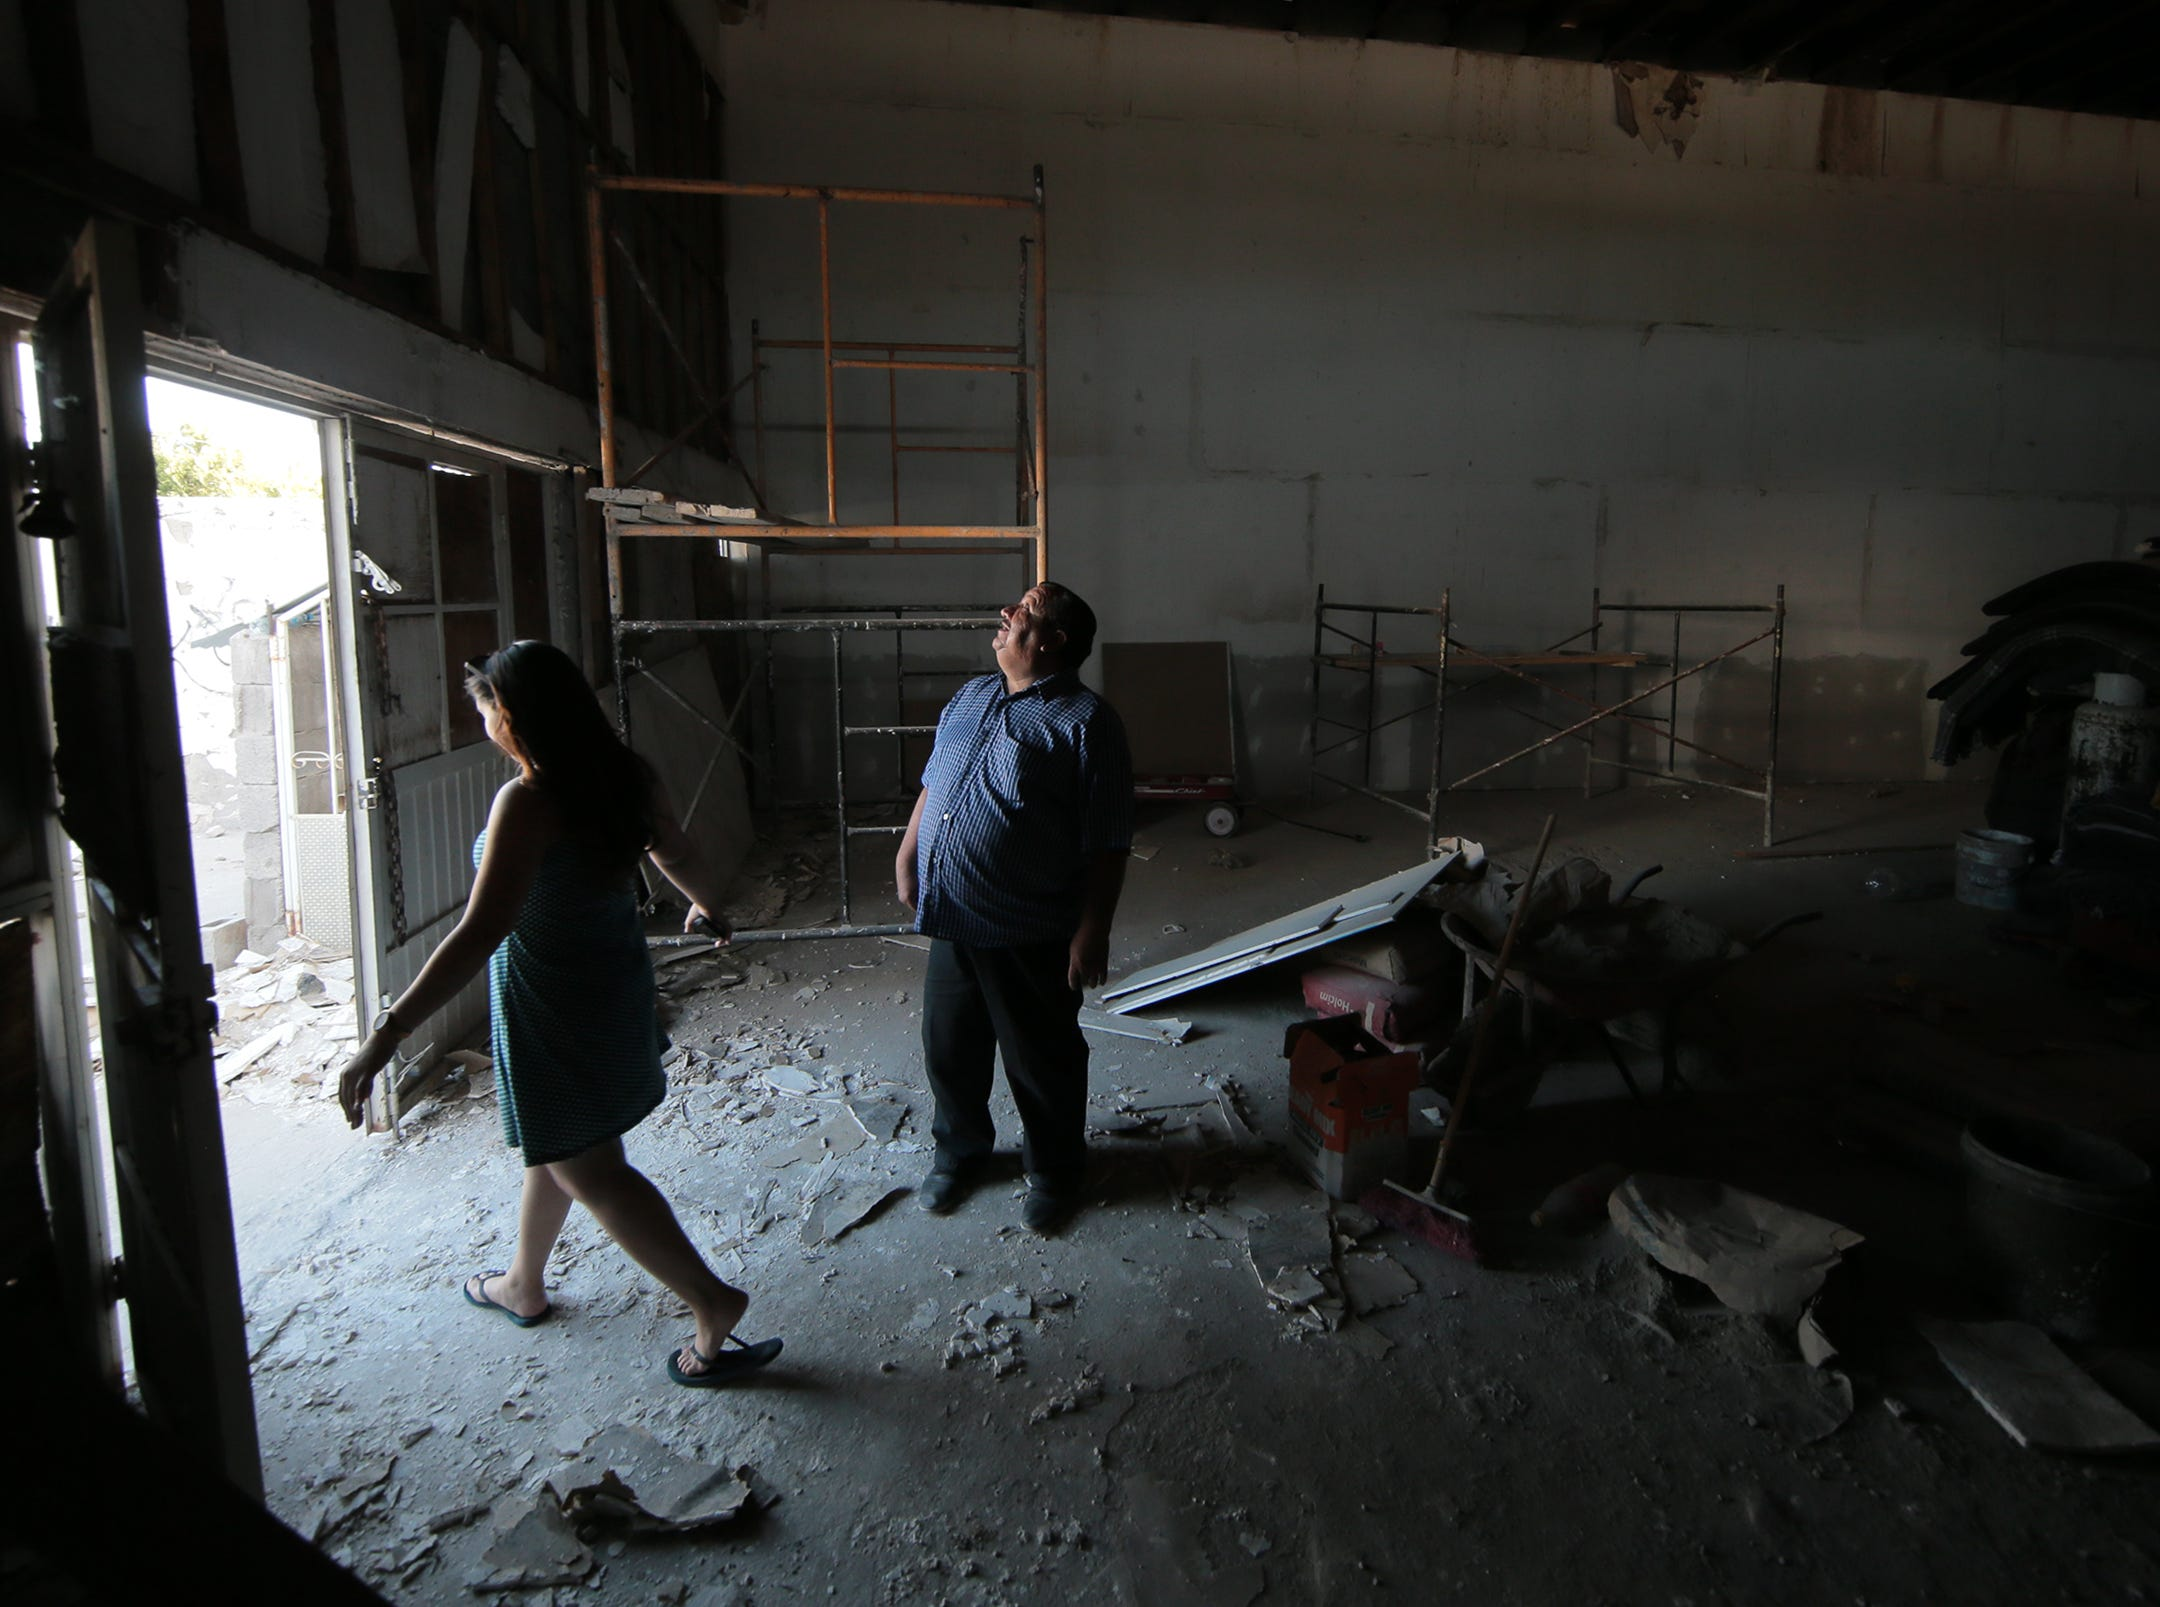 """Juan Fierro looks through a warehouse across from his current migrant shelter in Juarez he is converting into more space to house asylum seekers. His current shelter, Albergue Para Migrantes """"El Buen Pastor"""" has been full since the influx of migrants began."""